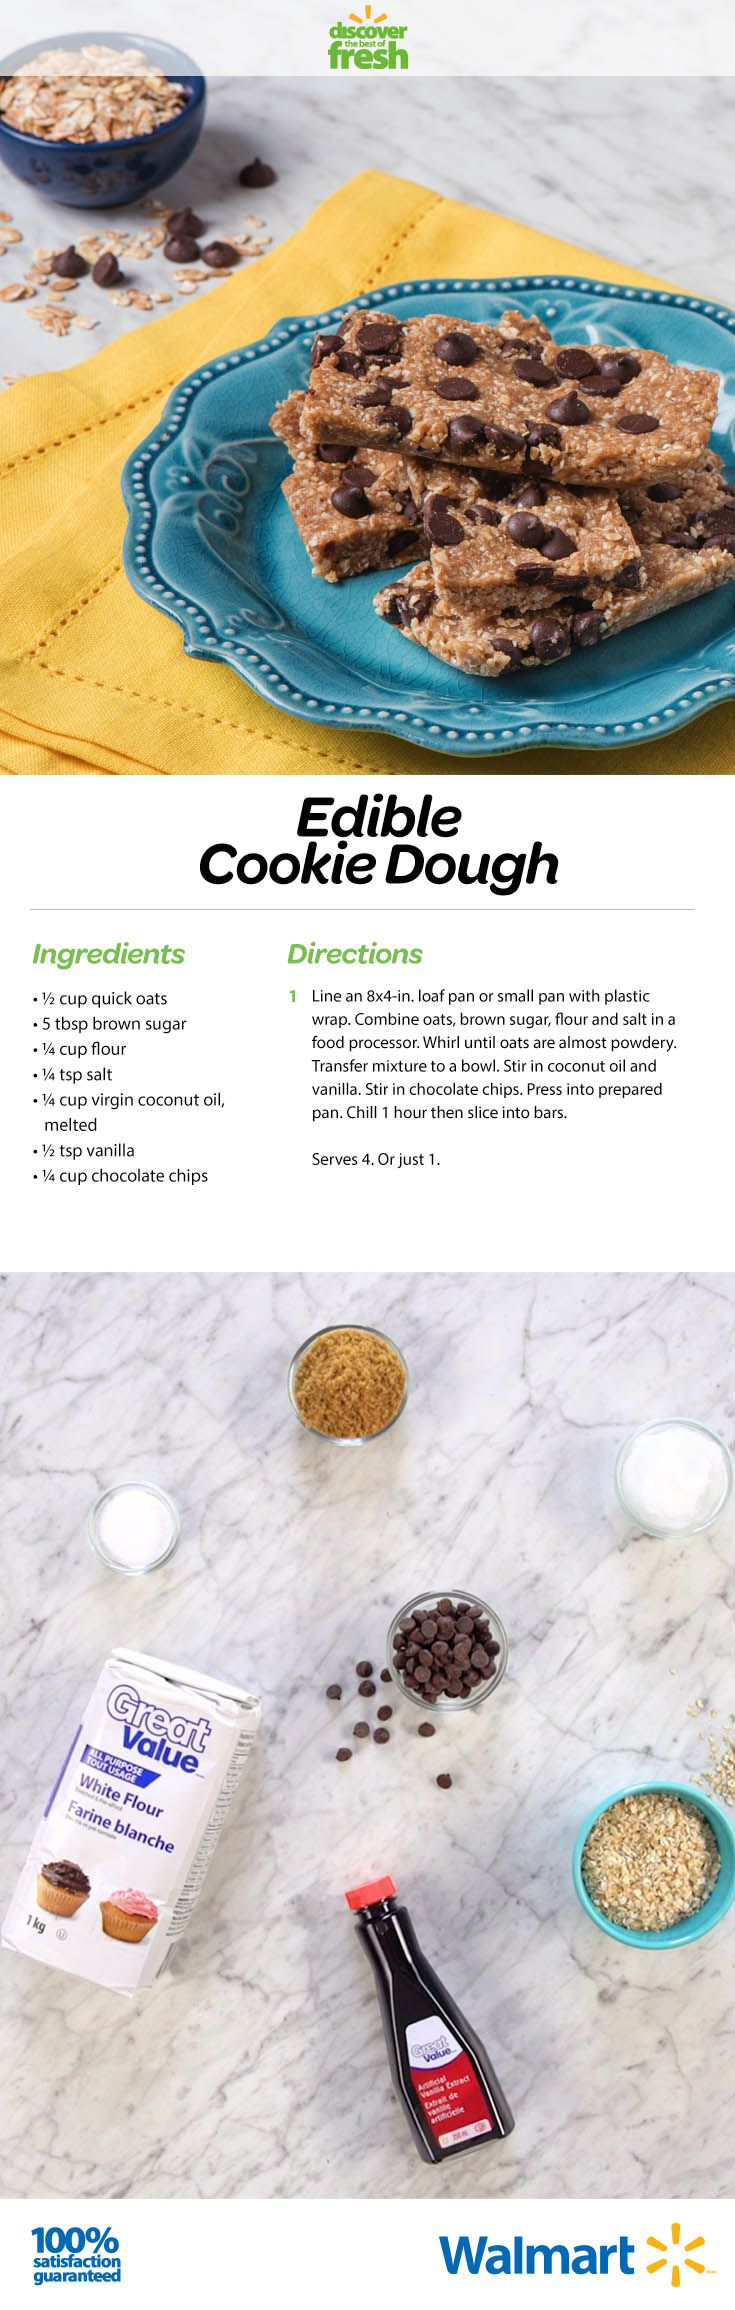 When we were kids, we ate raw cookie dough. Today not much has changed, except the recipe! This easy (and super-affordable) option only takes a few key ingredients.